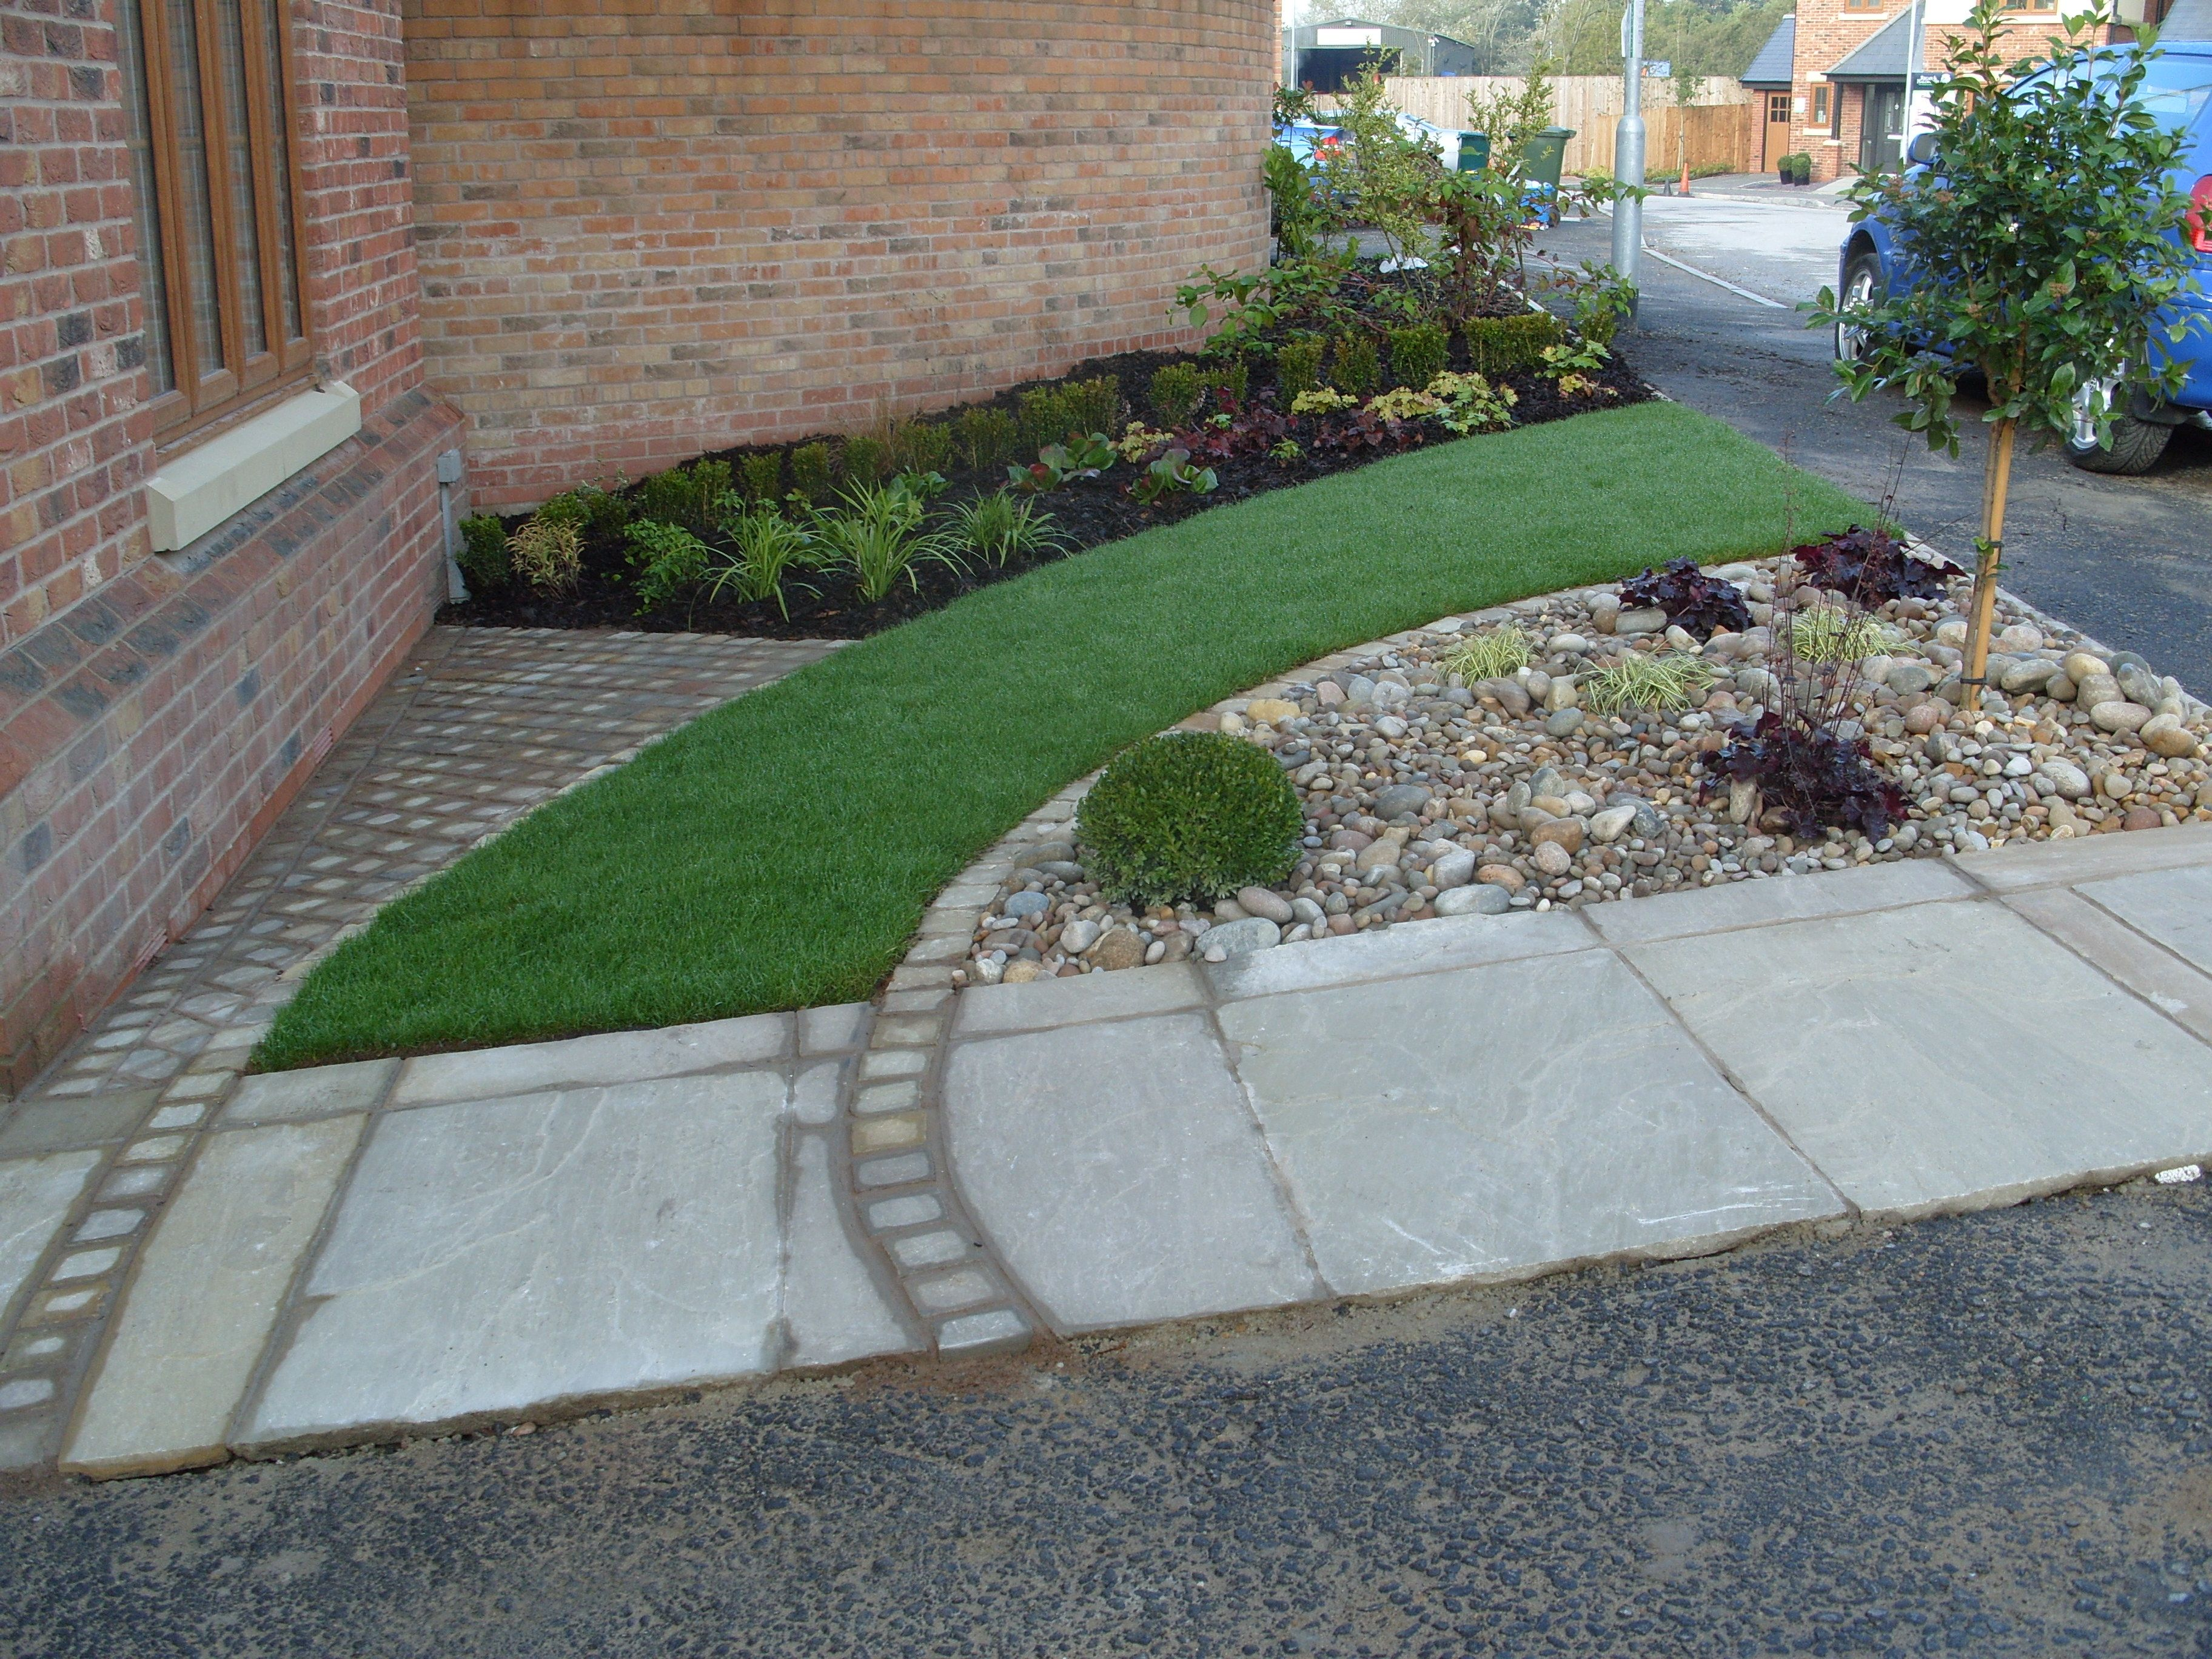 Merveilleux Front Garden On A New Build Estate : Angie Barker Trading As Garden Design  For All Seasons